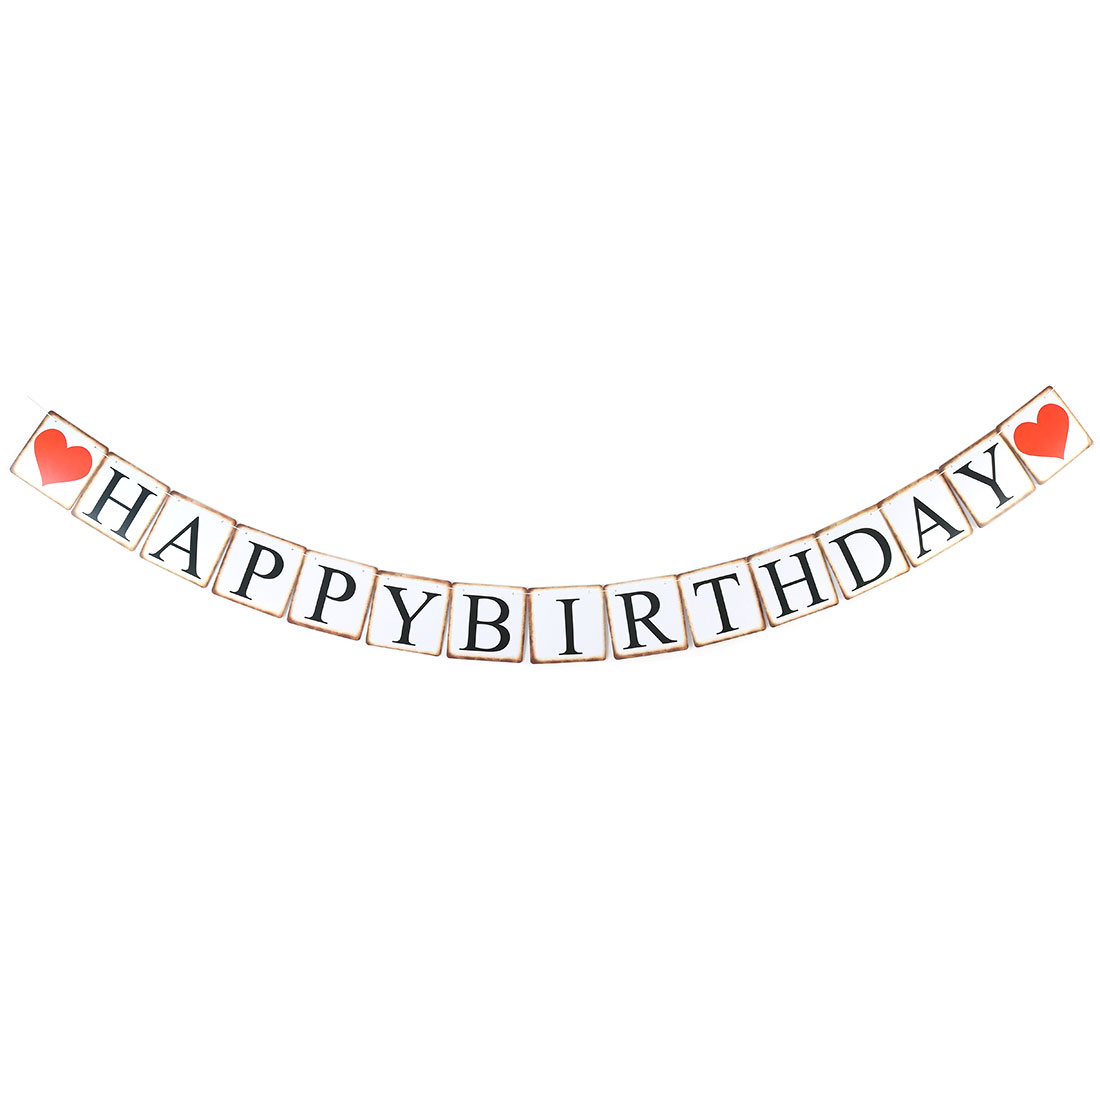 Birthday Party Square Cards Rope Hanger Decoration Photo Prop Bunting Banner